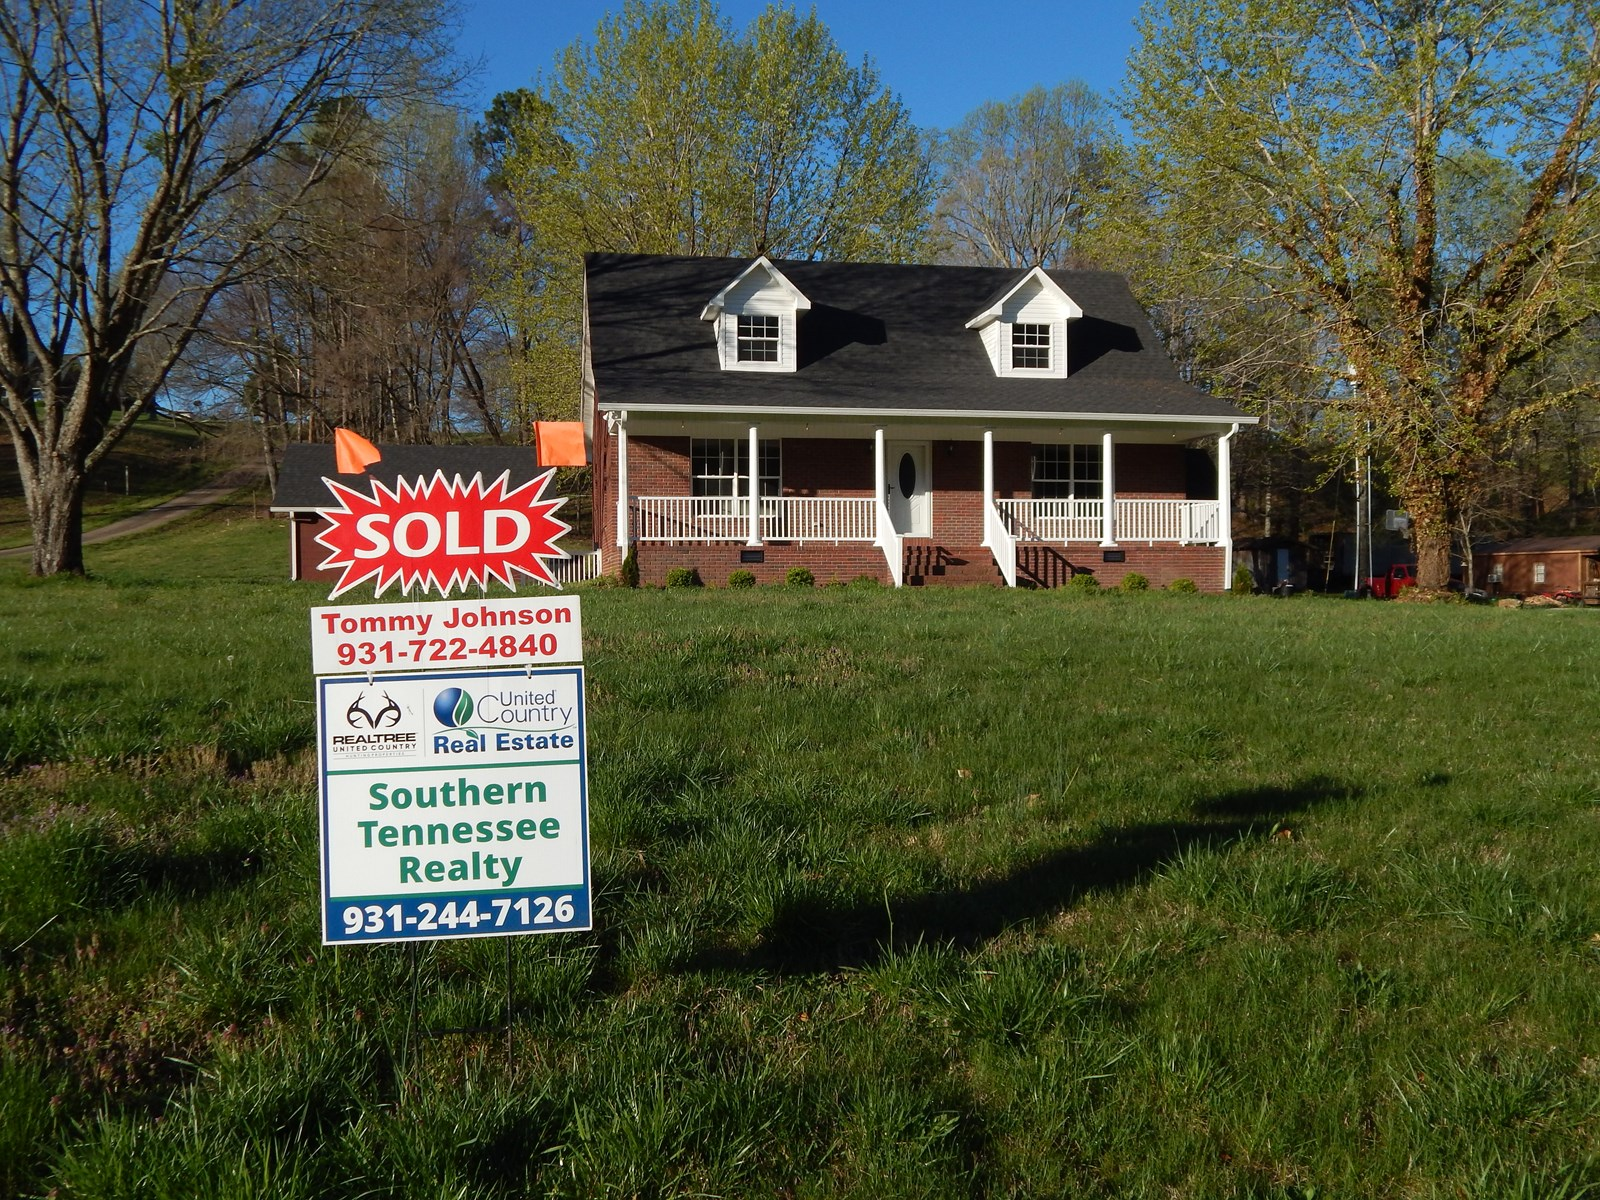 Tennessee Country Home 3 Bed, 2.5 Bath, 1.46 Acres For Sale!